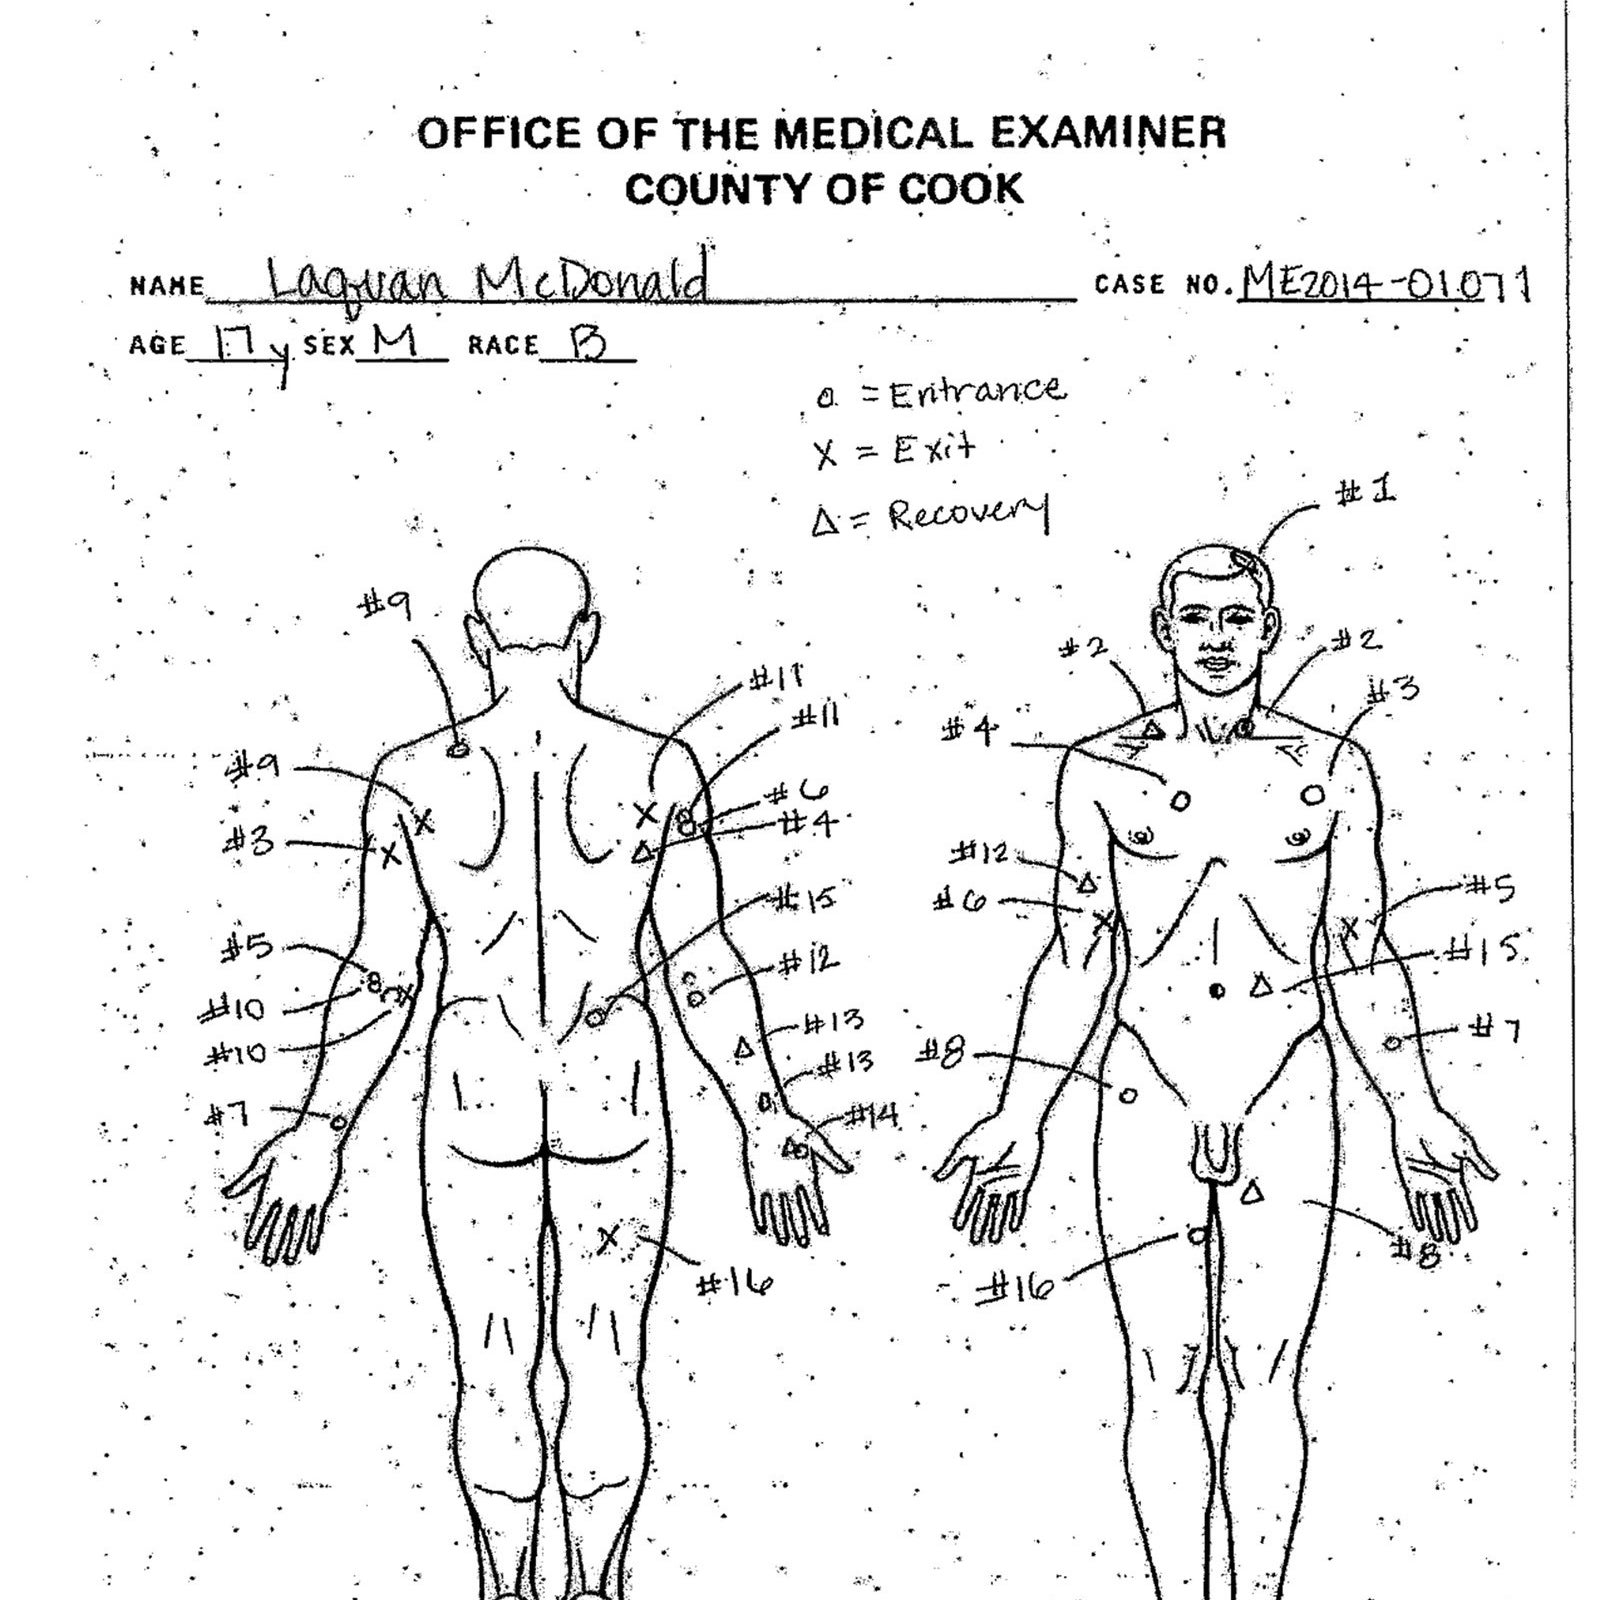 An autopsy diagram by the Cook County Medical Examiner's office shows the location of wounds McDonald's body.